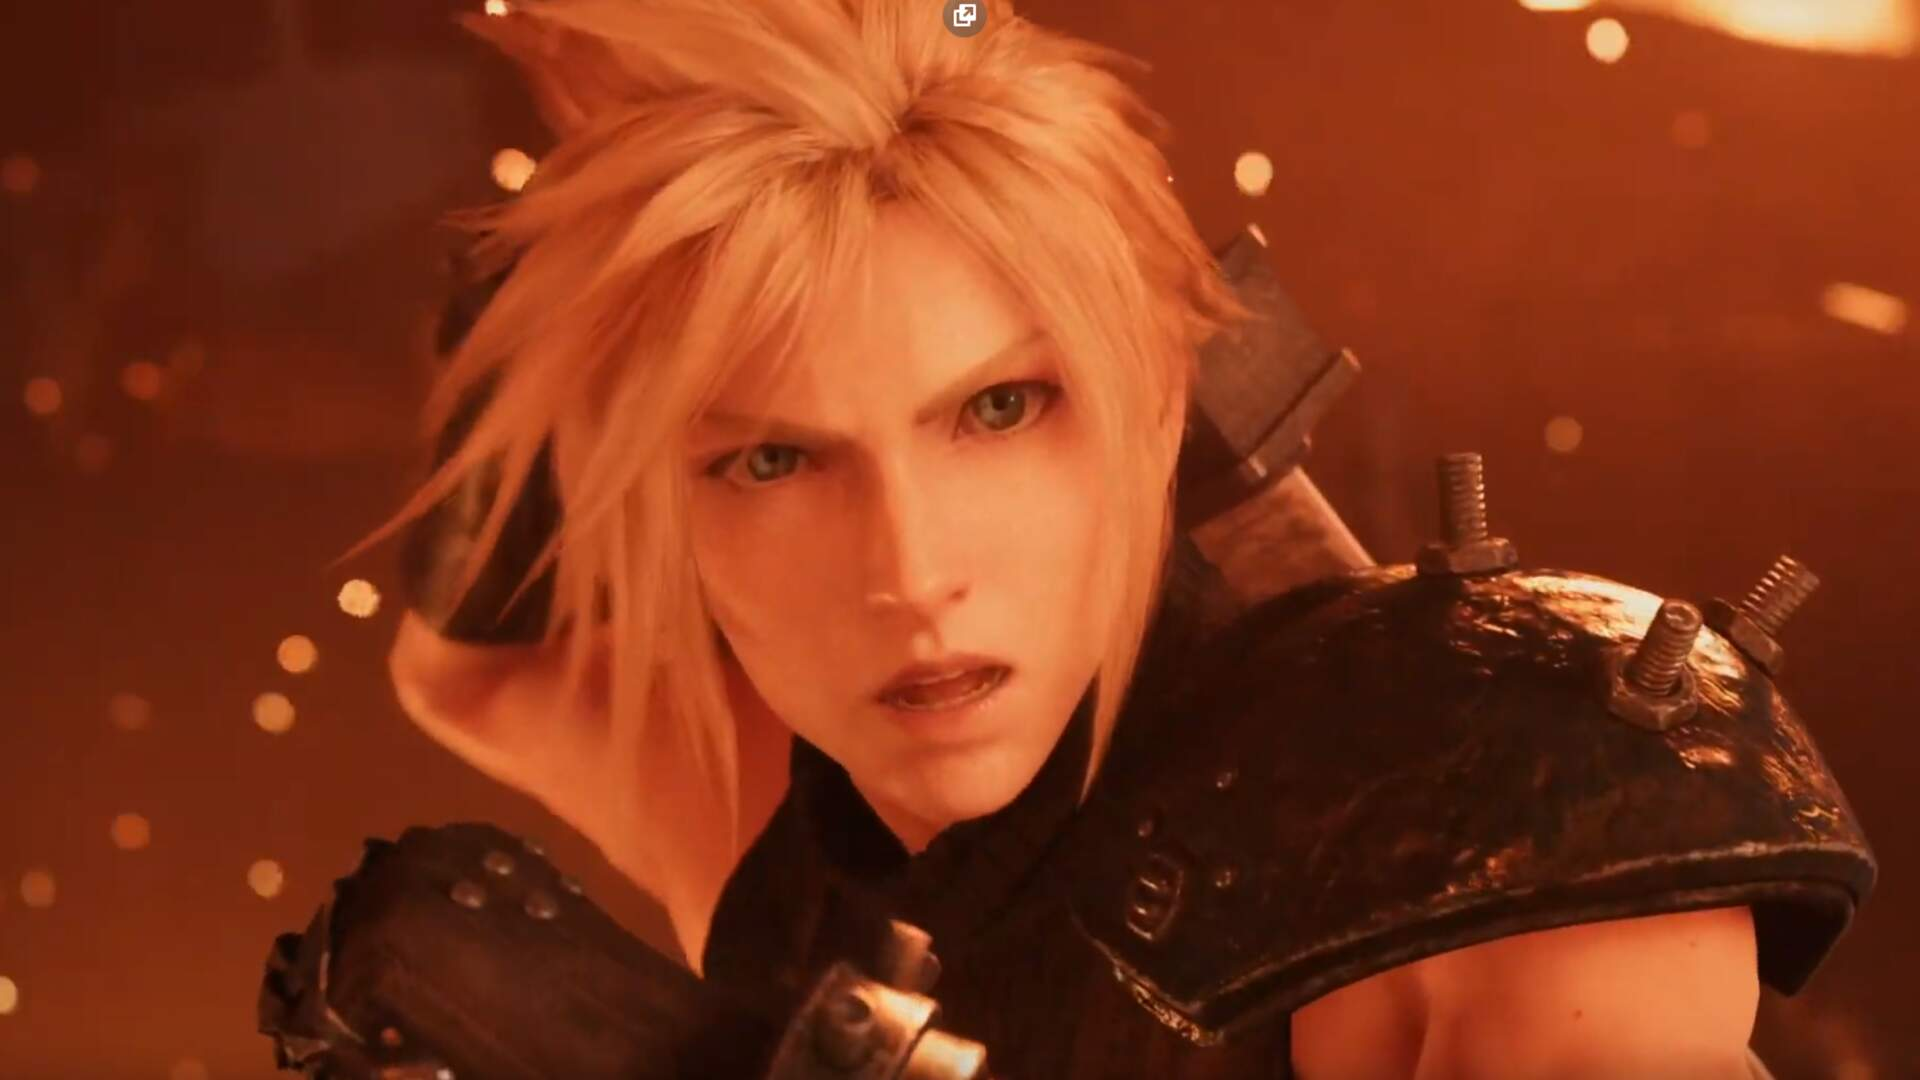 Final Fantasy 7 Remake Gets First New Trailer in Years, More Teased for E3